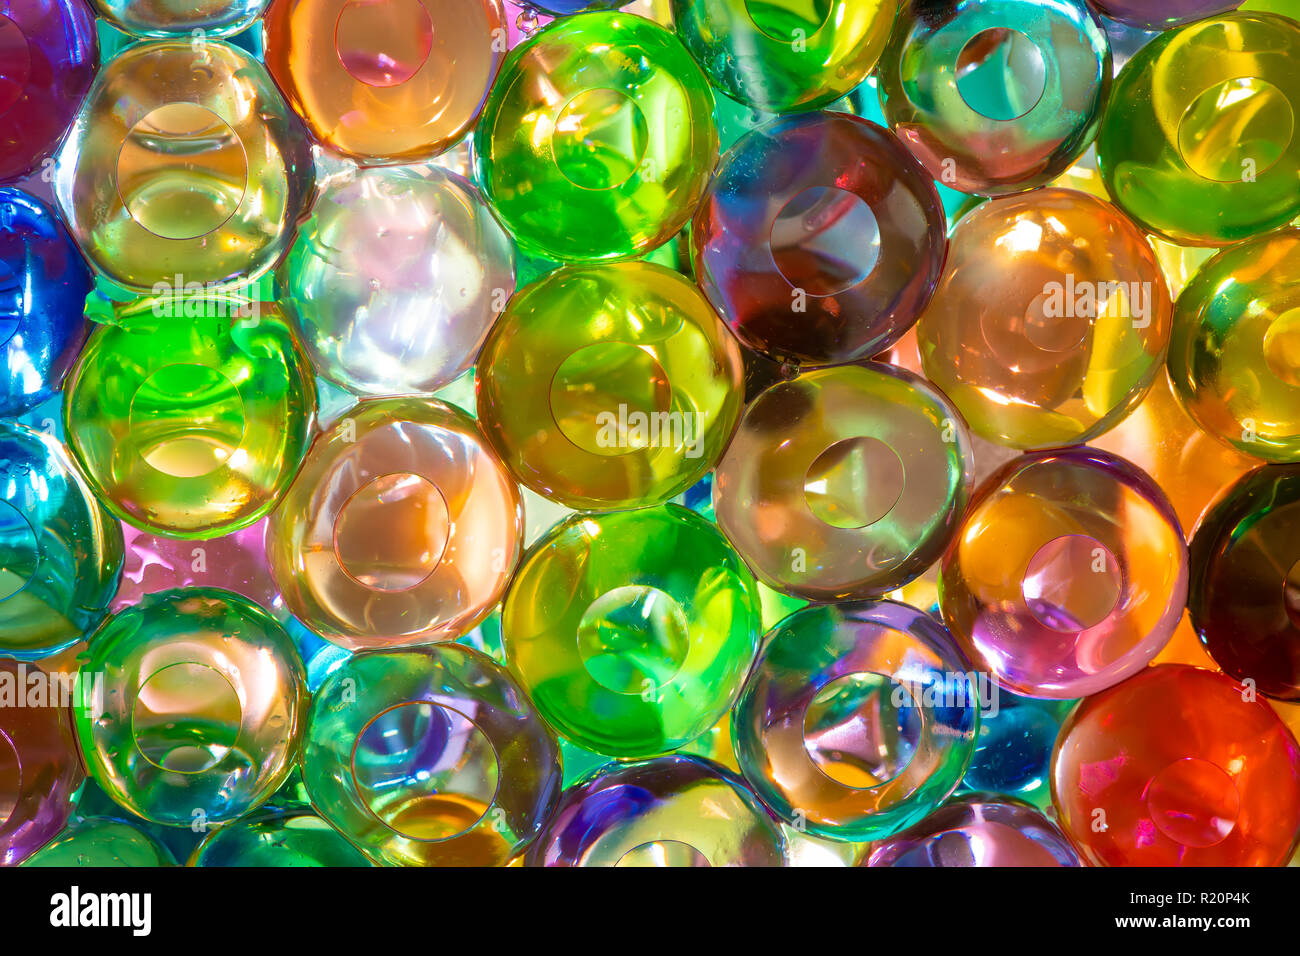 The colorful water beads or water crystal gel use for background Stock Photo